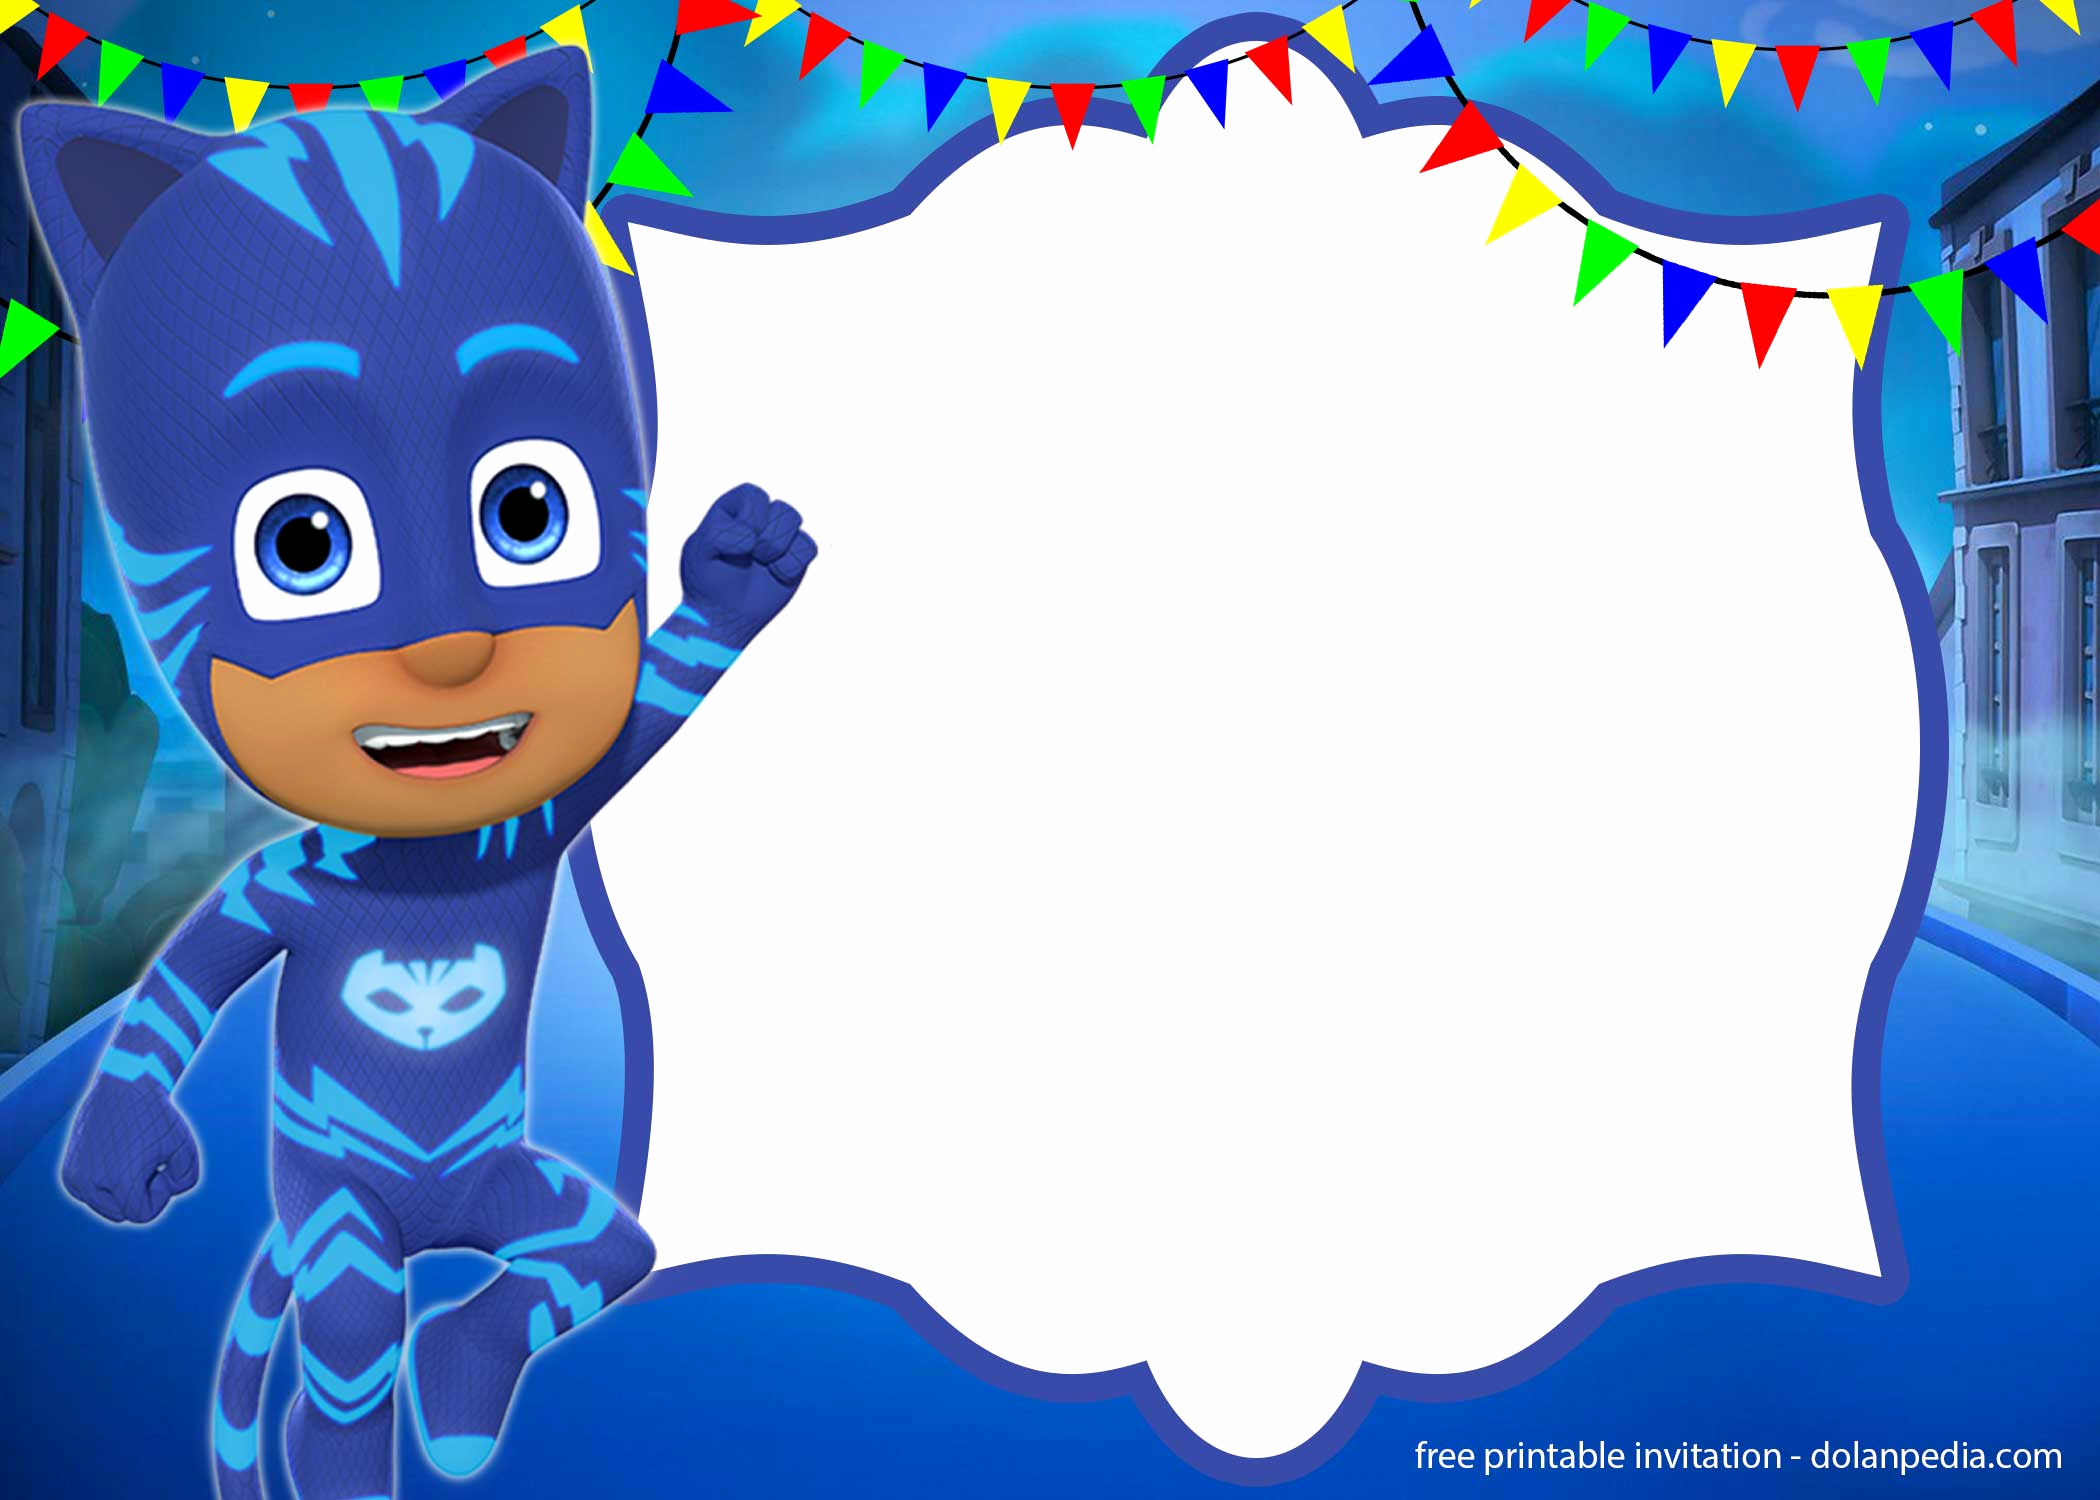 Pj Masks Invitation Template Awesome 9 Free Pj Masks Birthday Invitation Templates – Updated